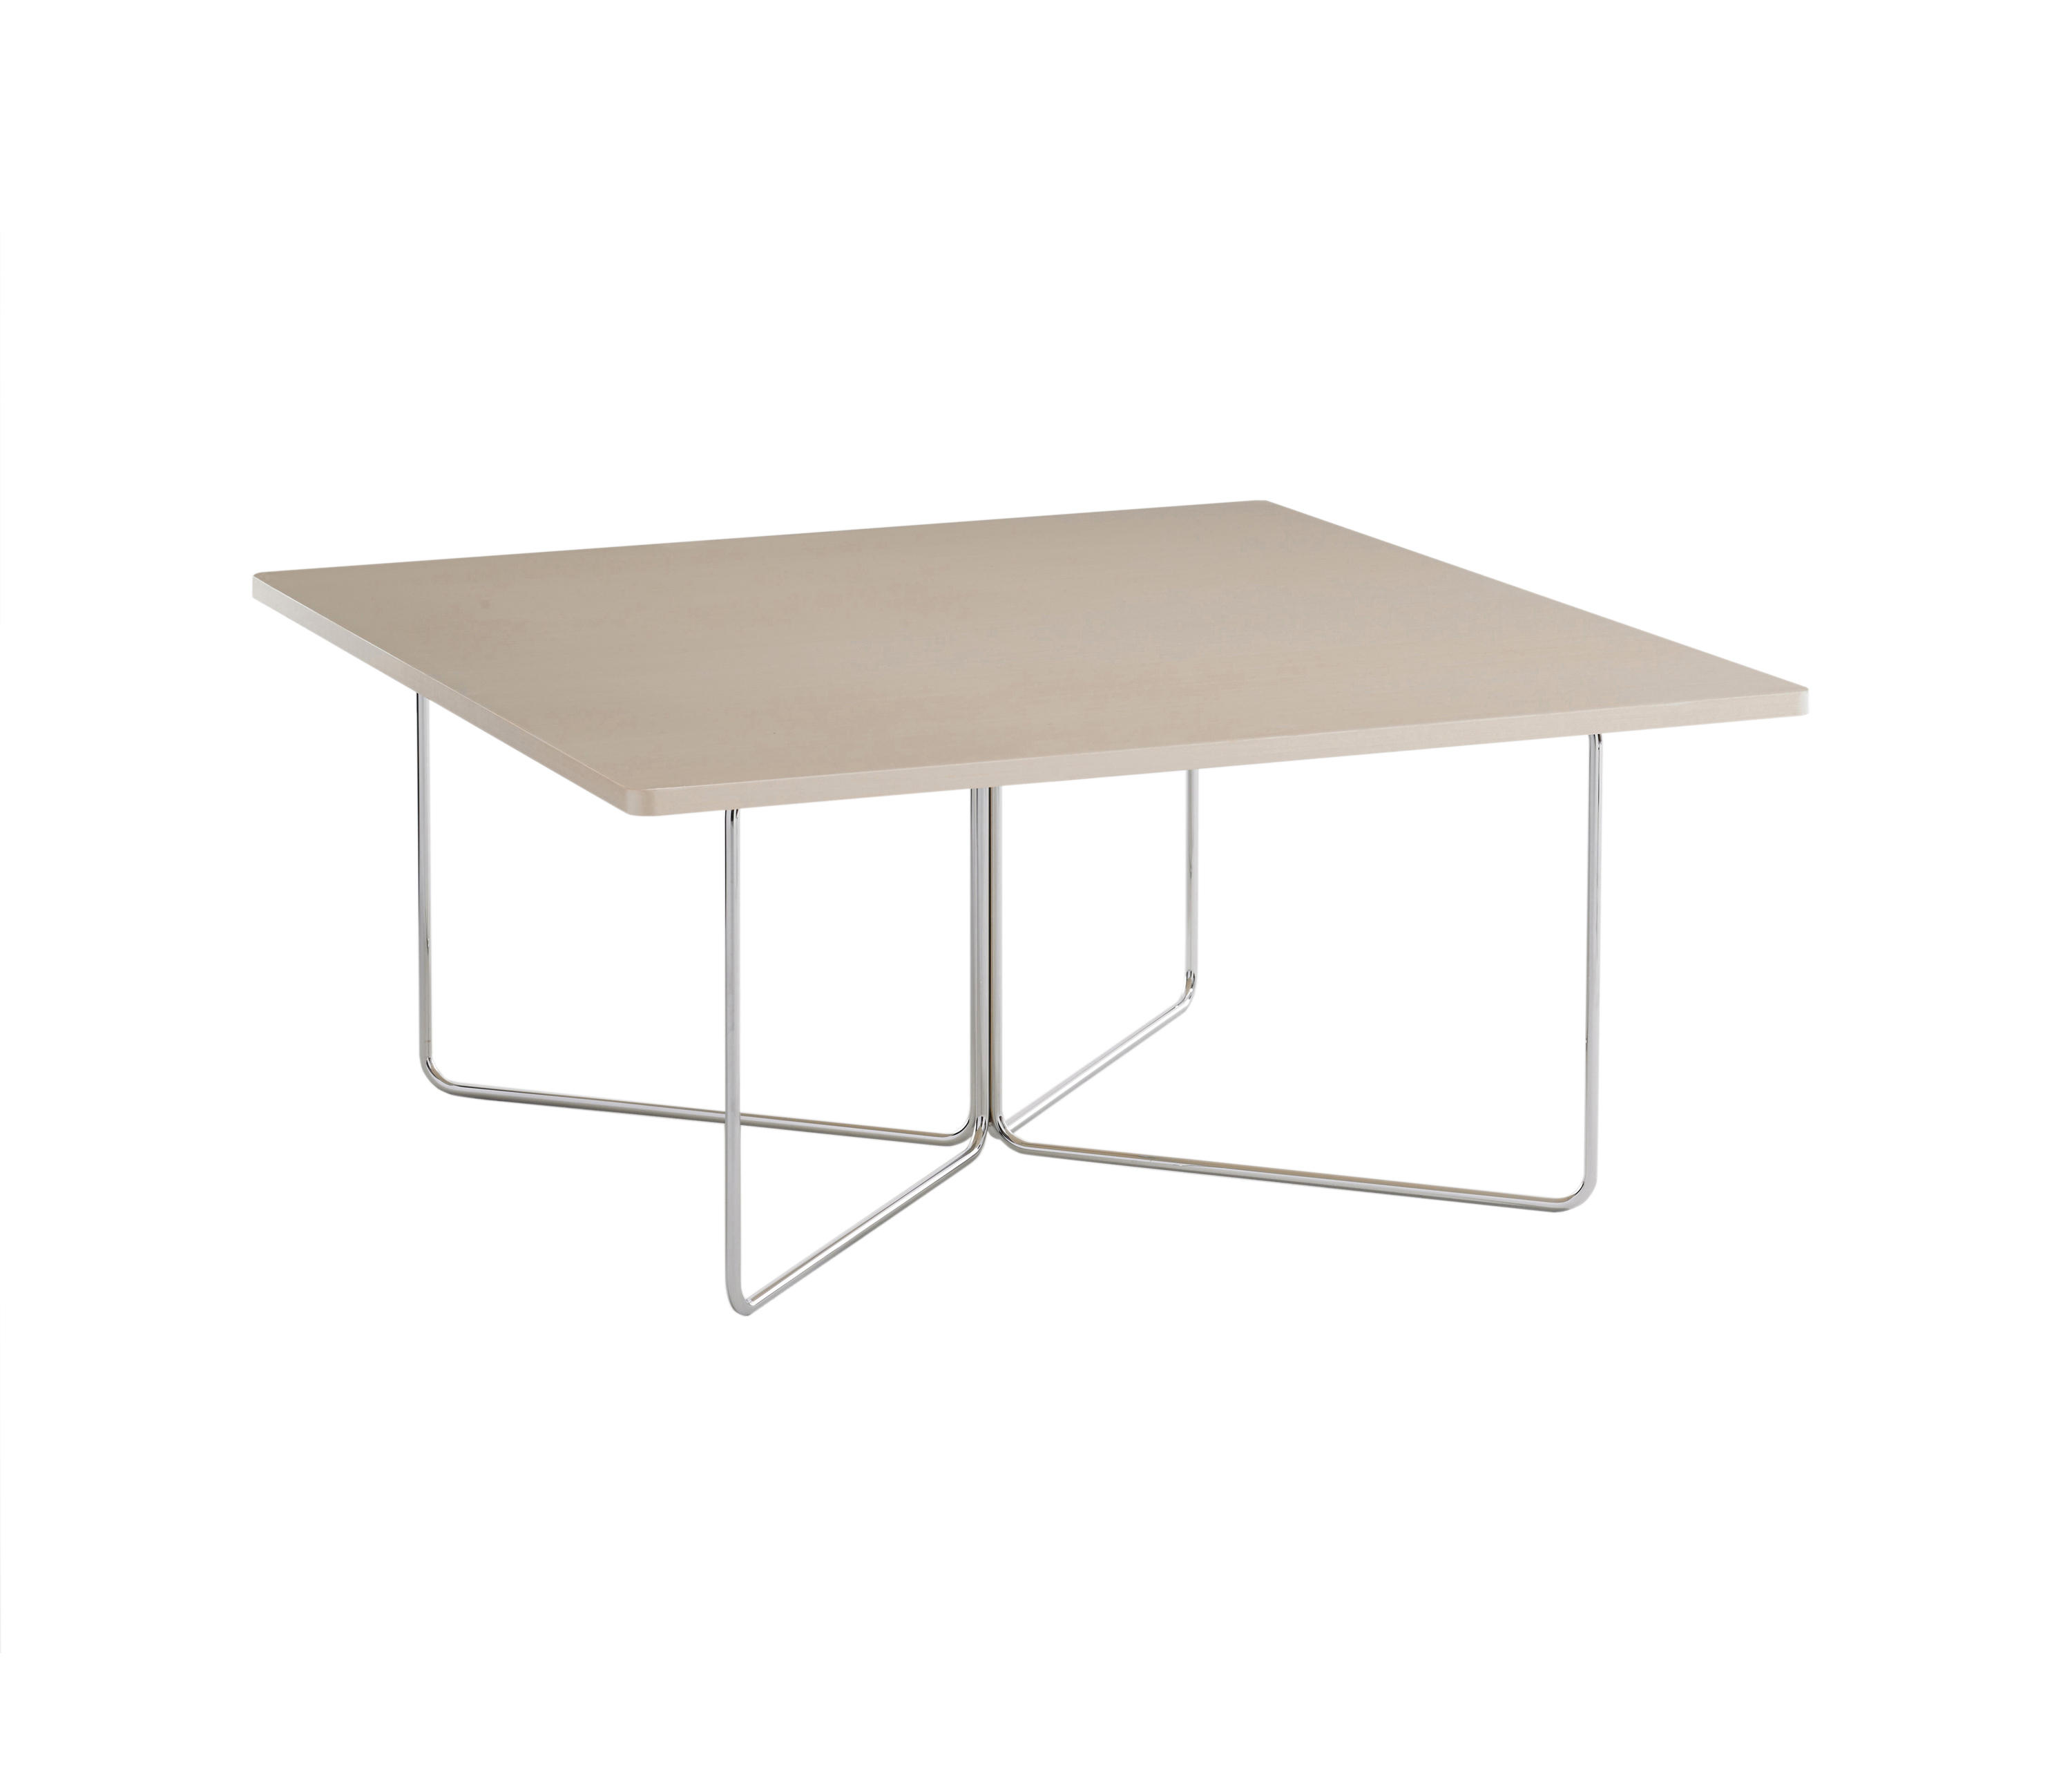 Kogen Large Square Coffee Table Lounge Tables From Studio Tk Architonic